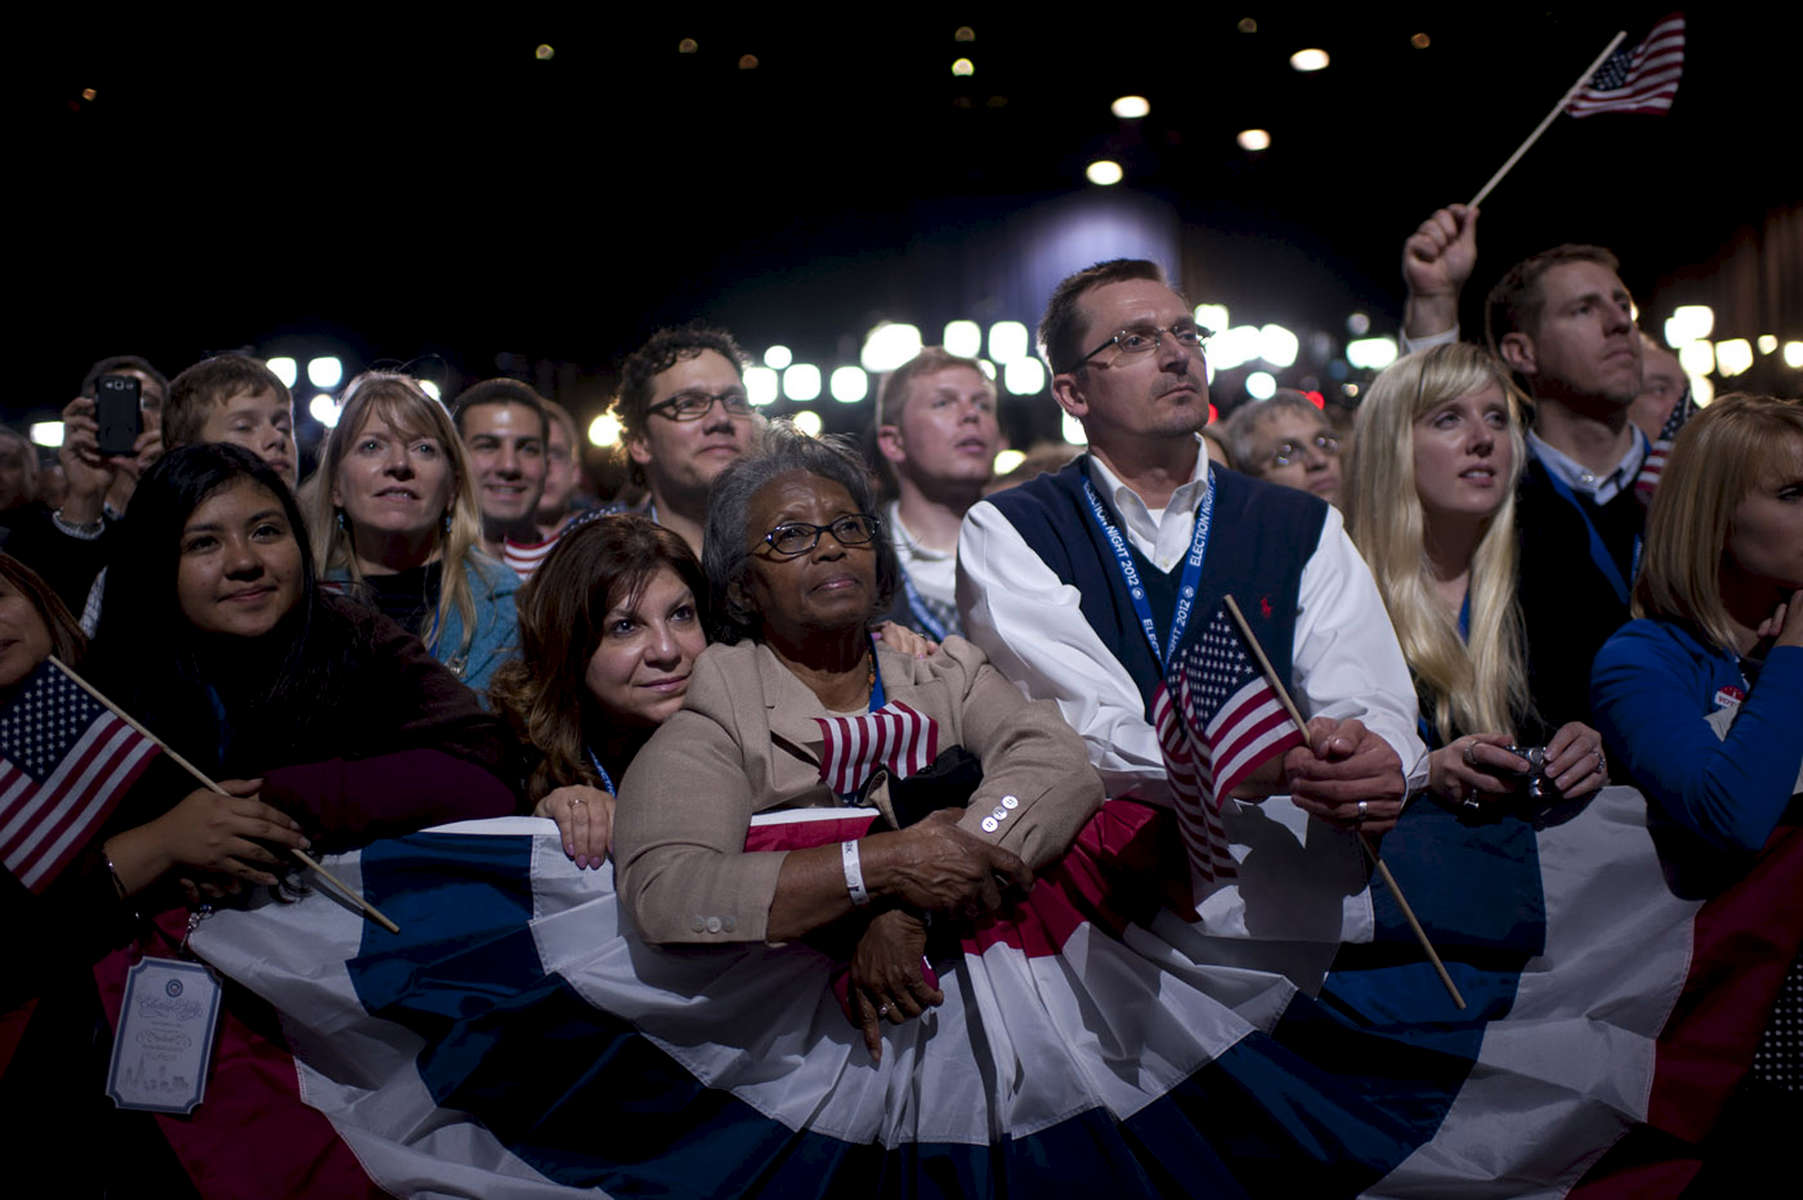 November 7, 2012: Chicago, IL:  Supporters listen as President Barack Obama speaks at a victory rally at McCormick Place on Election Night after winning a second term as President of the United States. (Scout Tufankjian for Obama for America/Polaris)